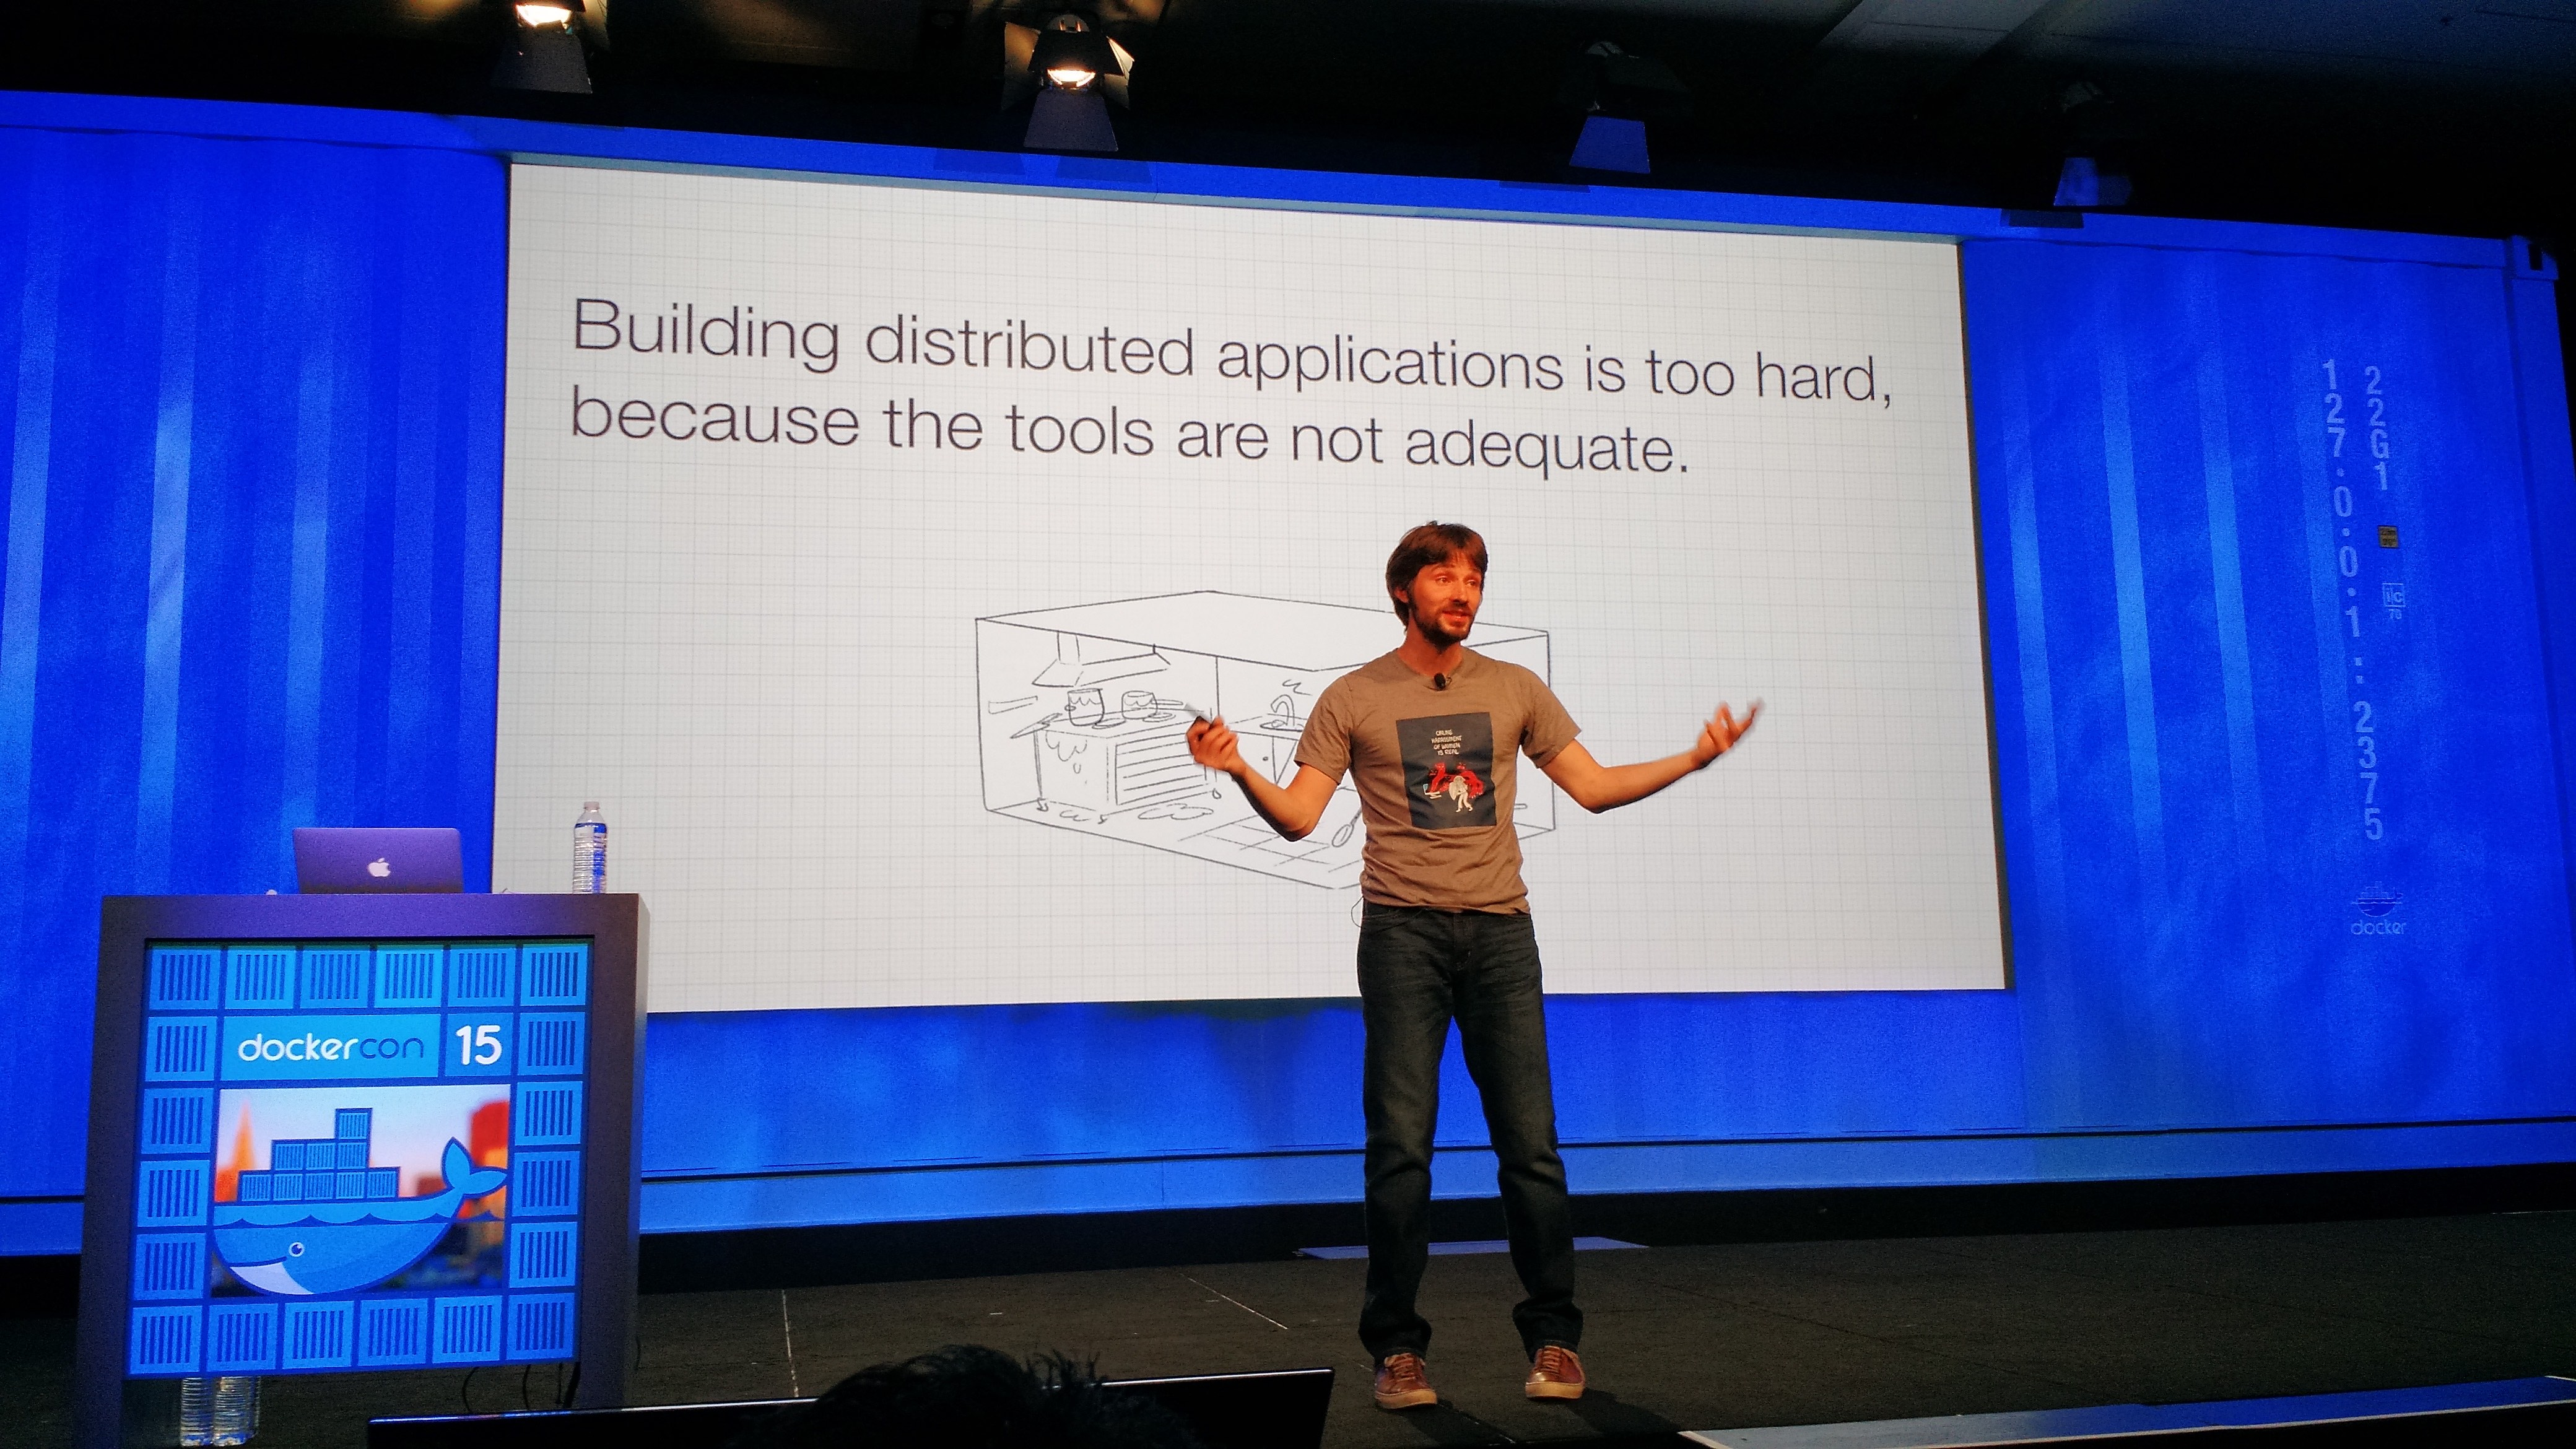 Docker cofounder and chief technology officer Solomon Hykes speaks at the DockerCon conference in San Francisco on June 22.